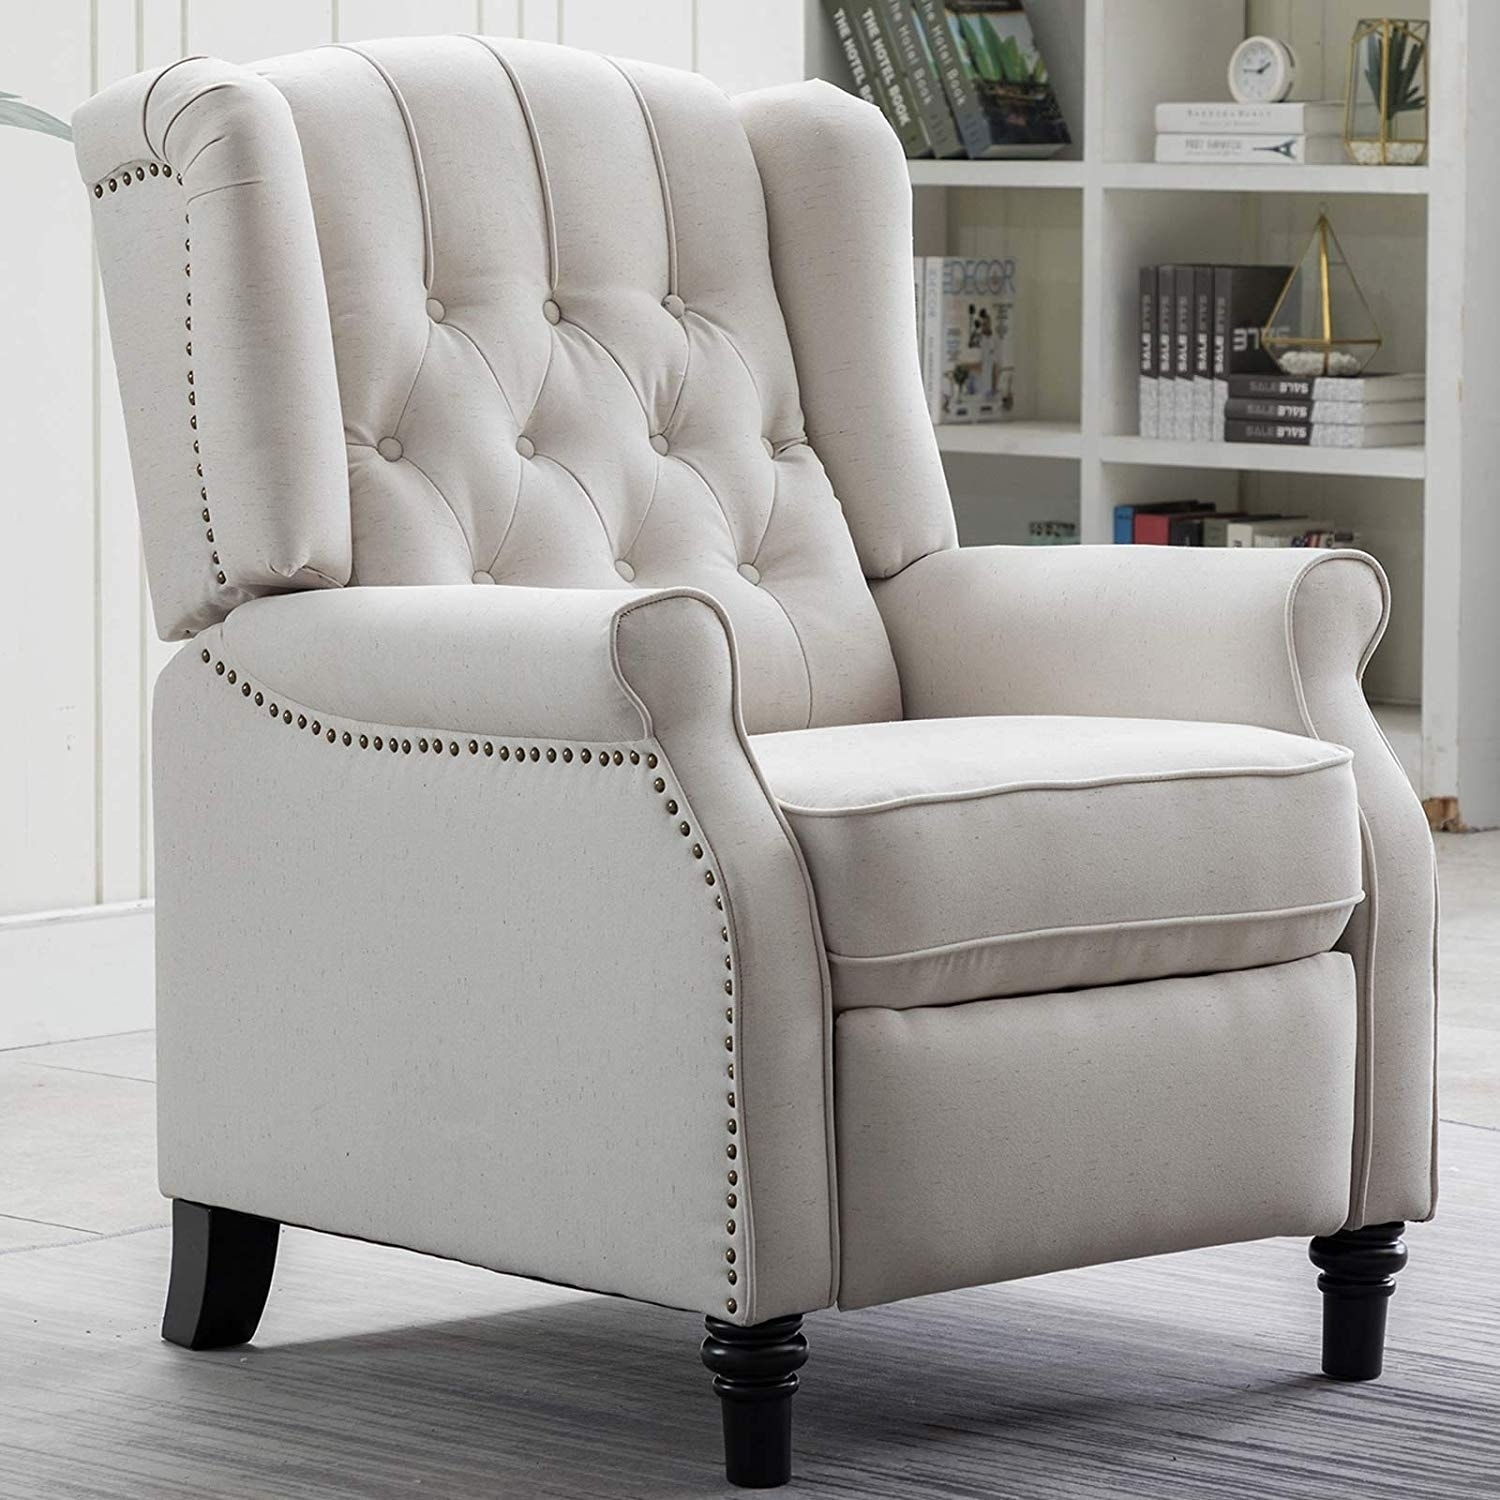 Shop Elizabeth Fabric Arm Chair Recliner with Tufted Back, Push